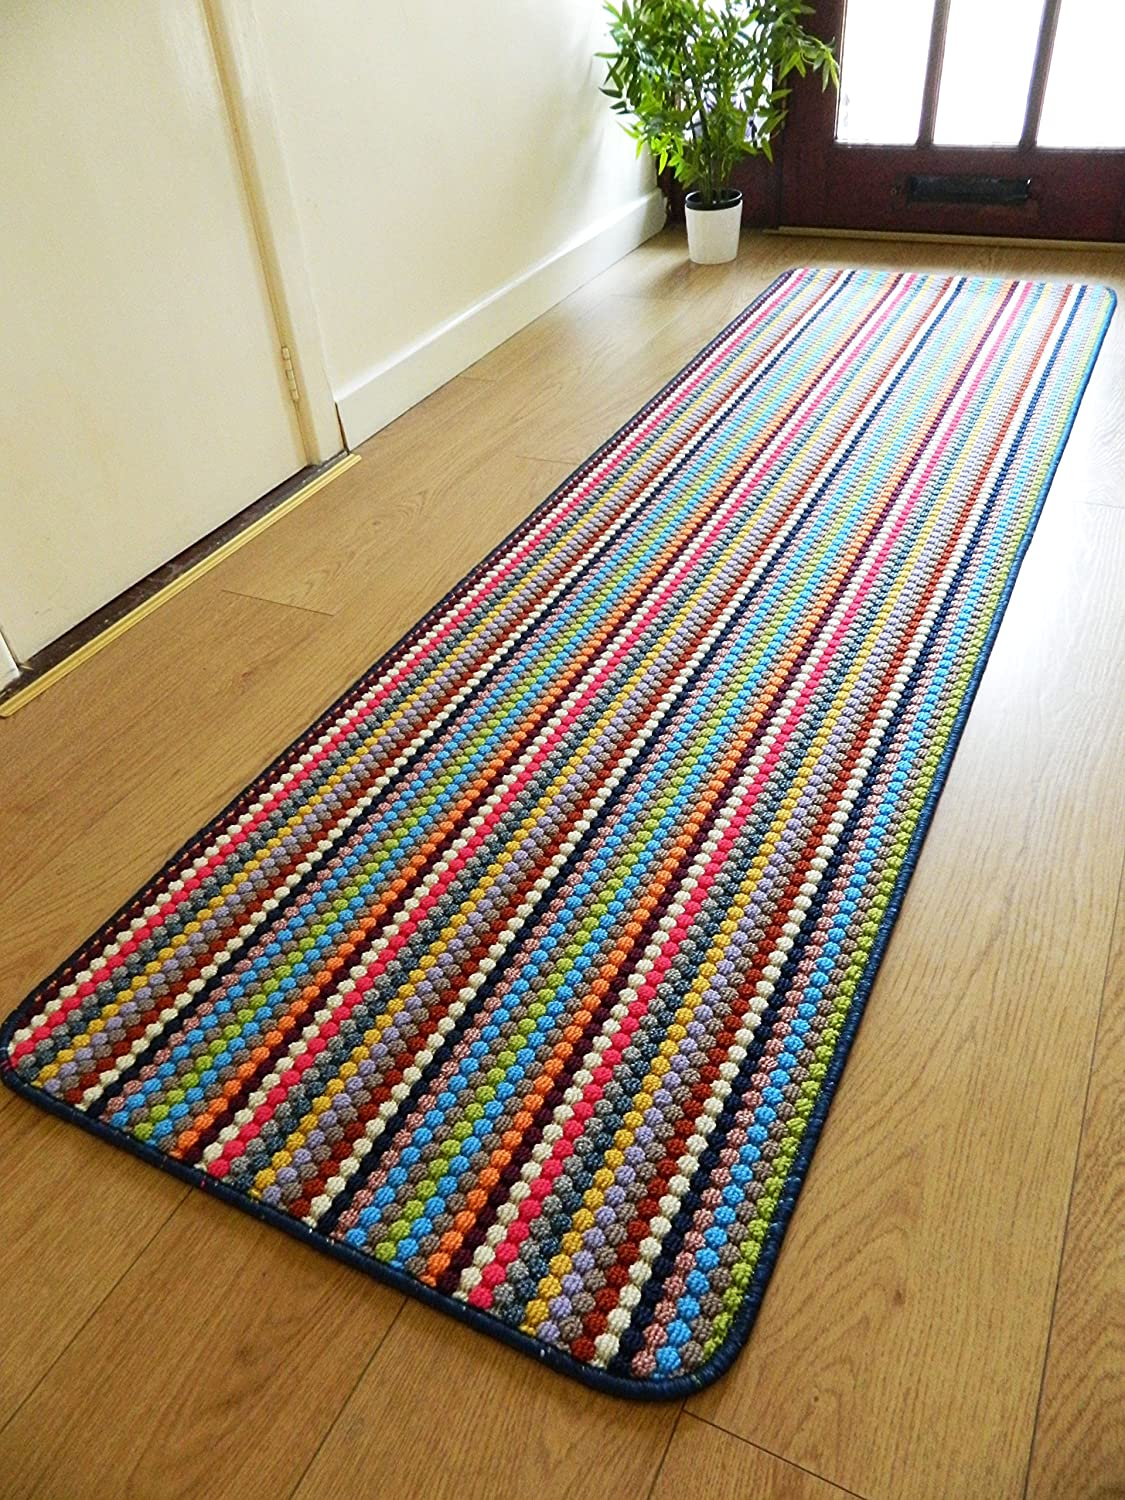 Charmant Rugs Superstore NEW MULTI COLOURED MODERN WASHABLE NON SLIP KITCHEN UTILITY  HALL LONG RUNNER DOOR MAT RUG (7 (66x225cm): Amazon.co.uk: Kitchen U0026 Home